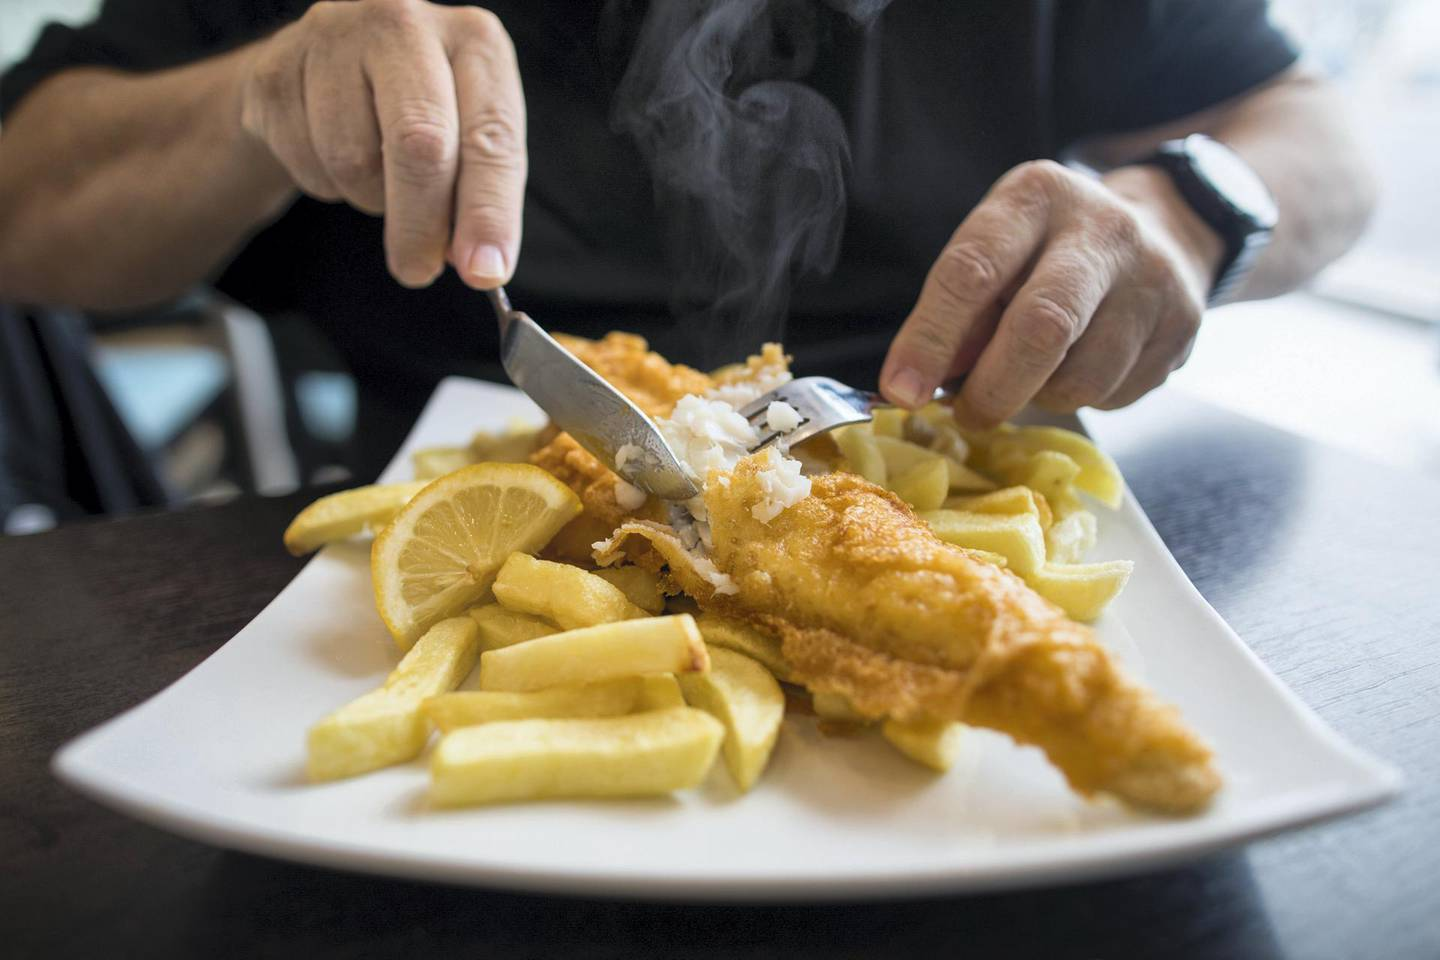 A customer cuts a cod on a plate of fish and chips at a restaurant in Deal, U.K., on Thursday, Oct. 15, 2020. Germany put pressure on France to back down on its demands over fishing, one of the biggest obstacles to a post-Brexit trade deal with the U.K., as Boris Johnson warned he is disappointed about the progress of the negotiations. Photographer: Chris Ratcliffe/Bloomberg via Getty Images